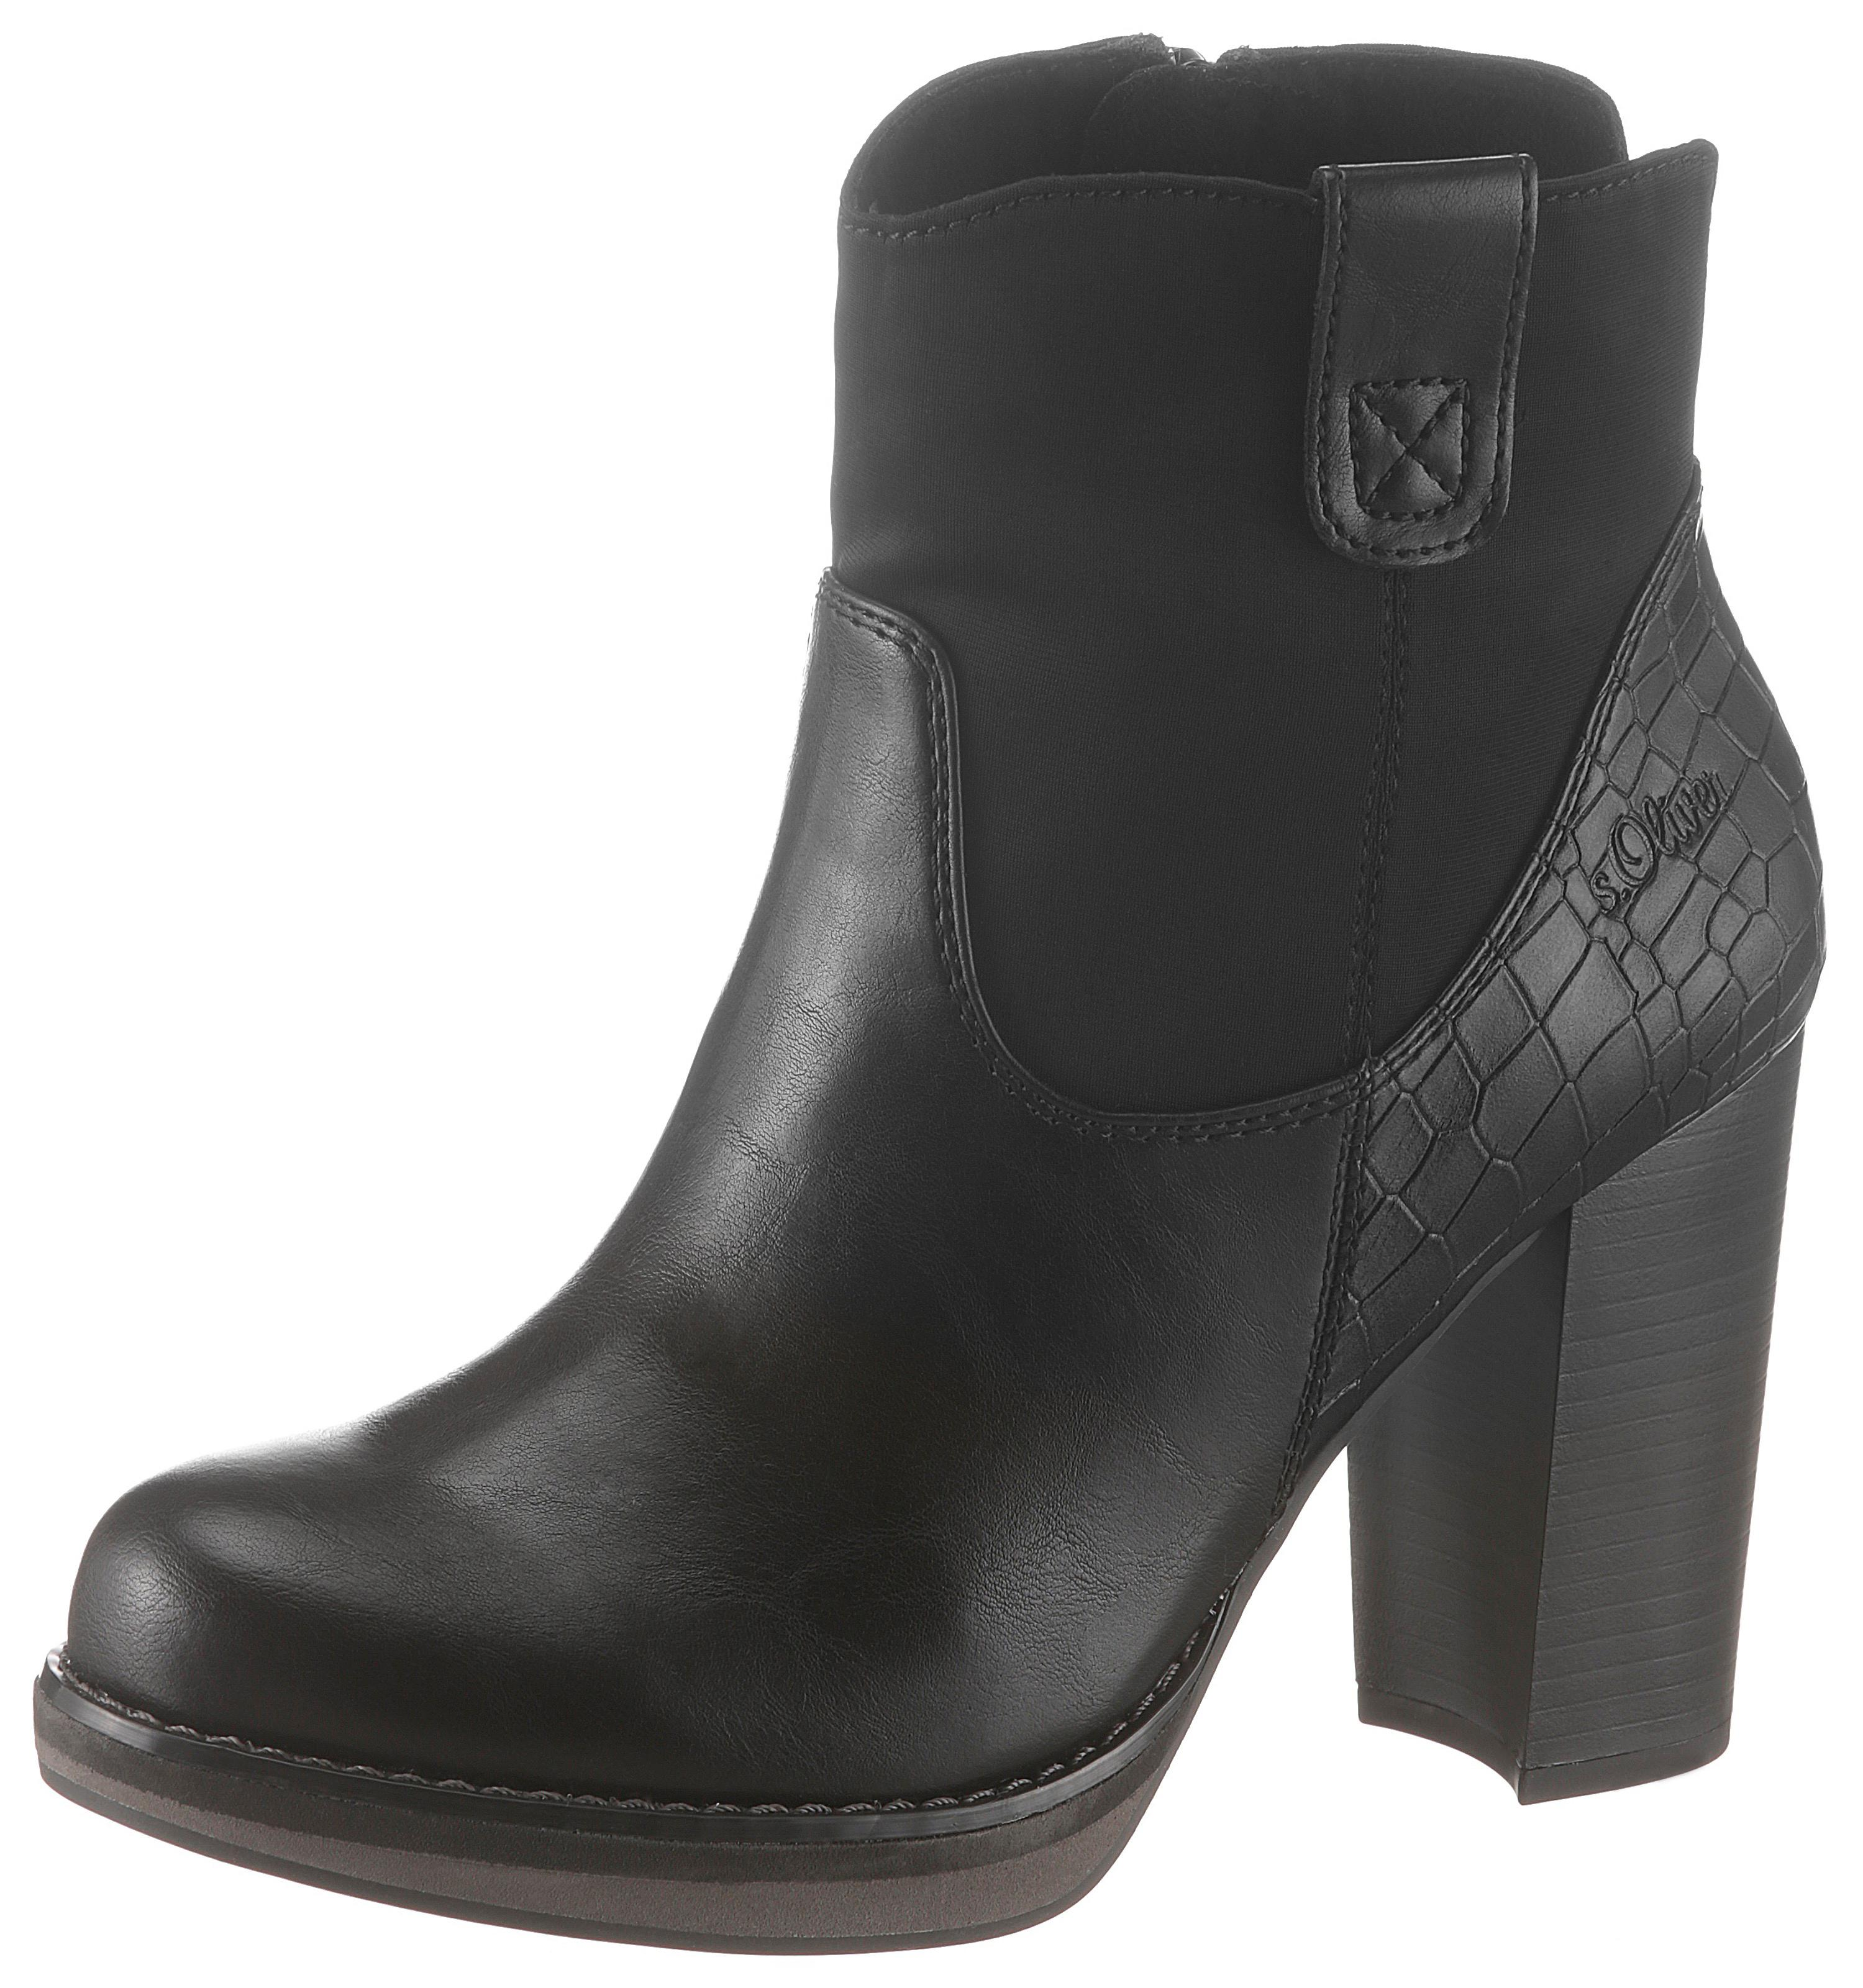 sOliver High-Heel-Stiefelette | Schuhe > High Heels > High Heel Stiefeletten | Schwarz | S.Oliver